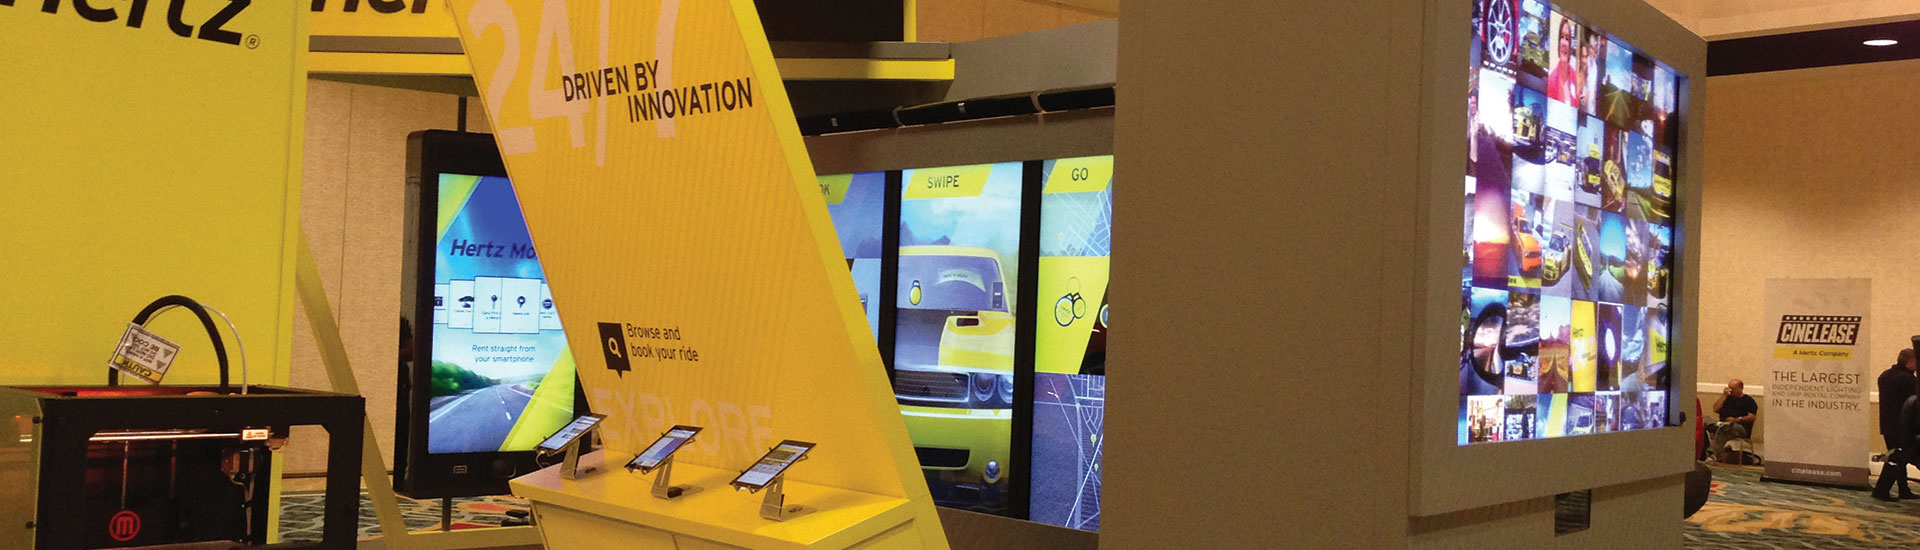 HERTZ Tradeshow & Exhibit Interactive Hardware by Horizon Display